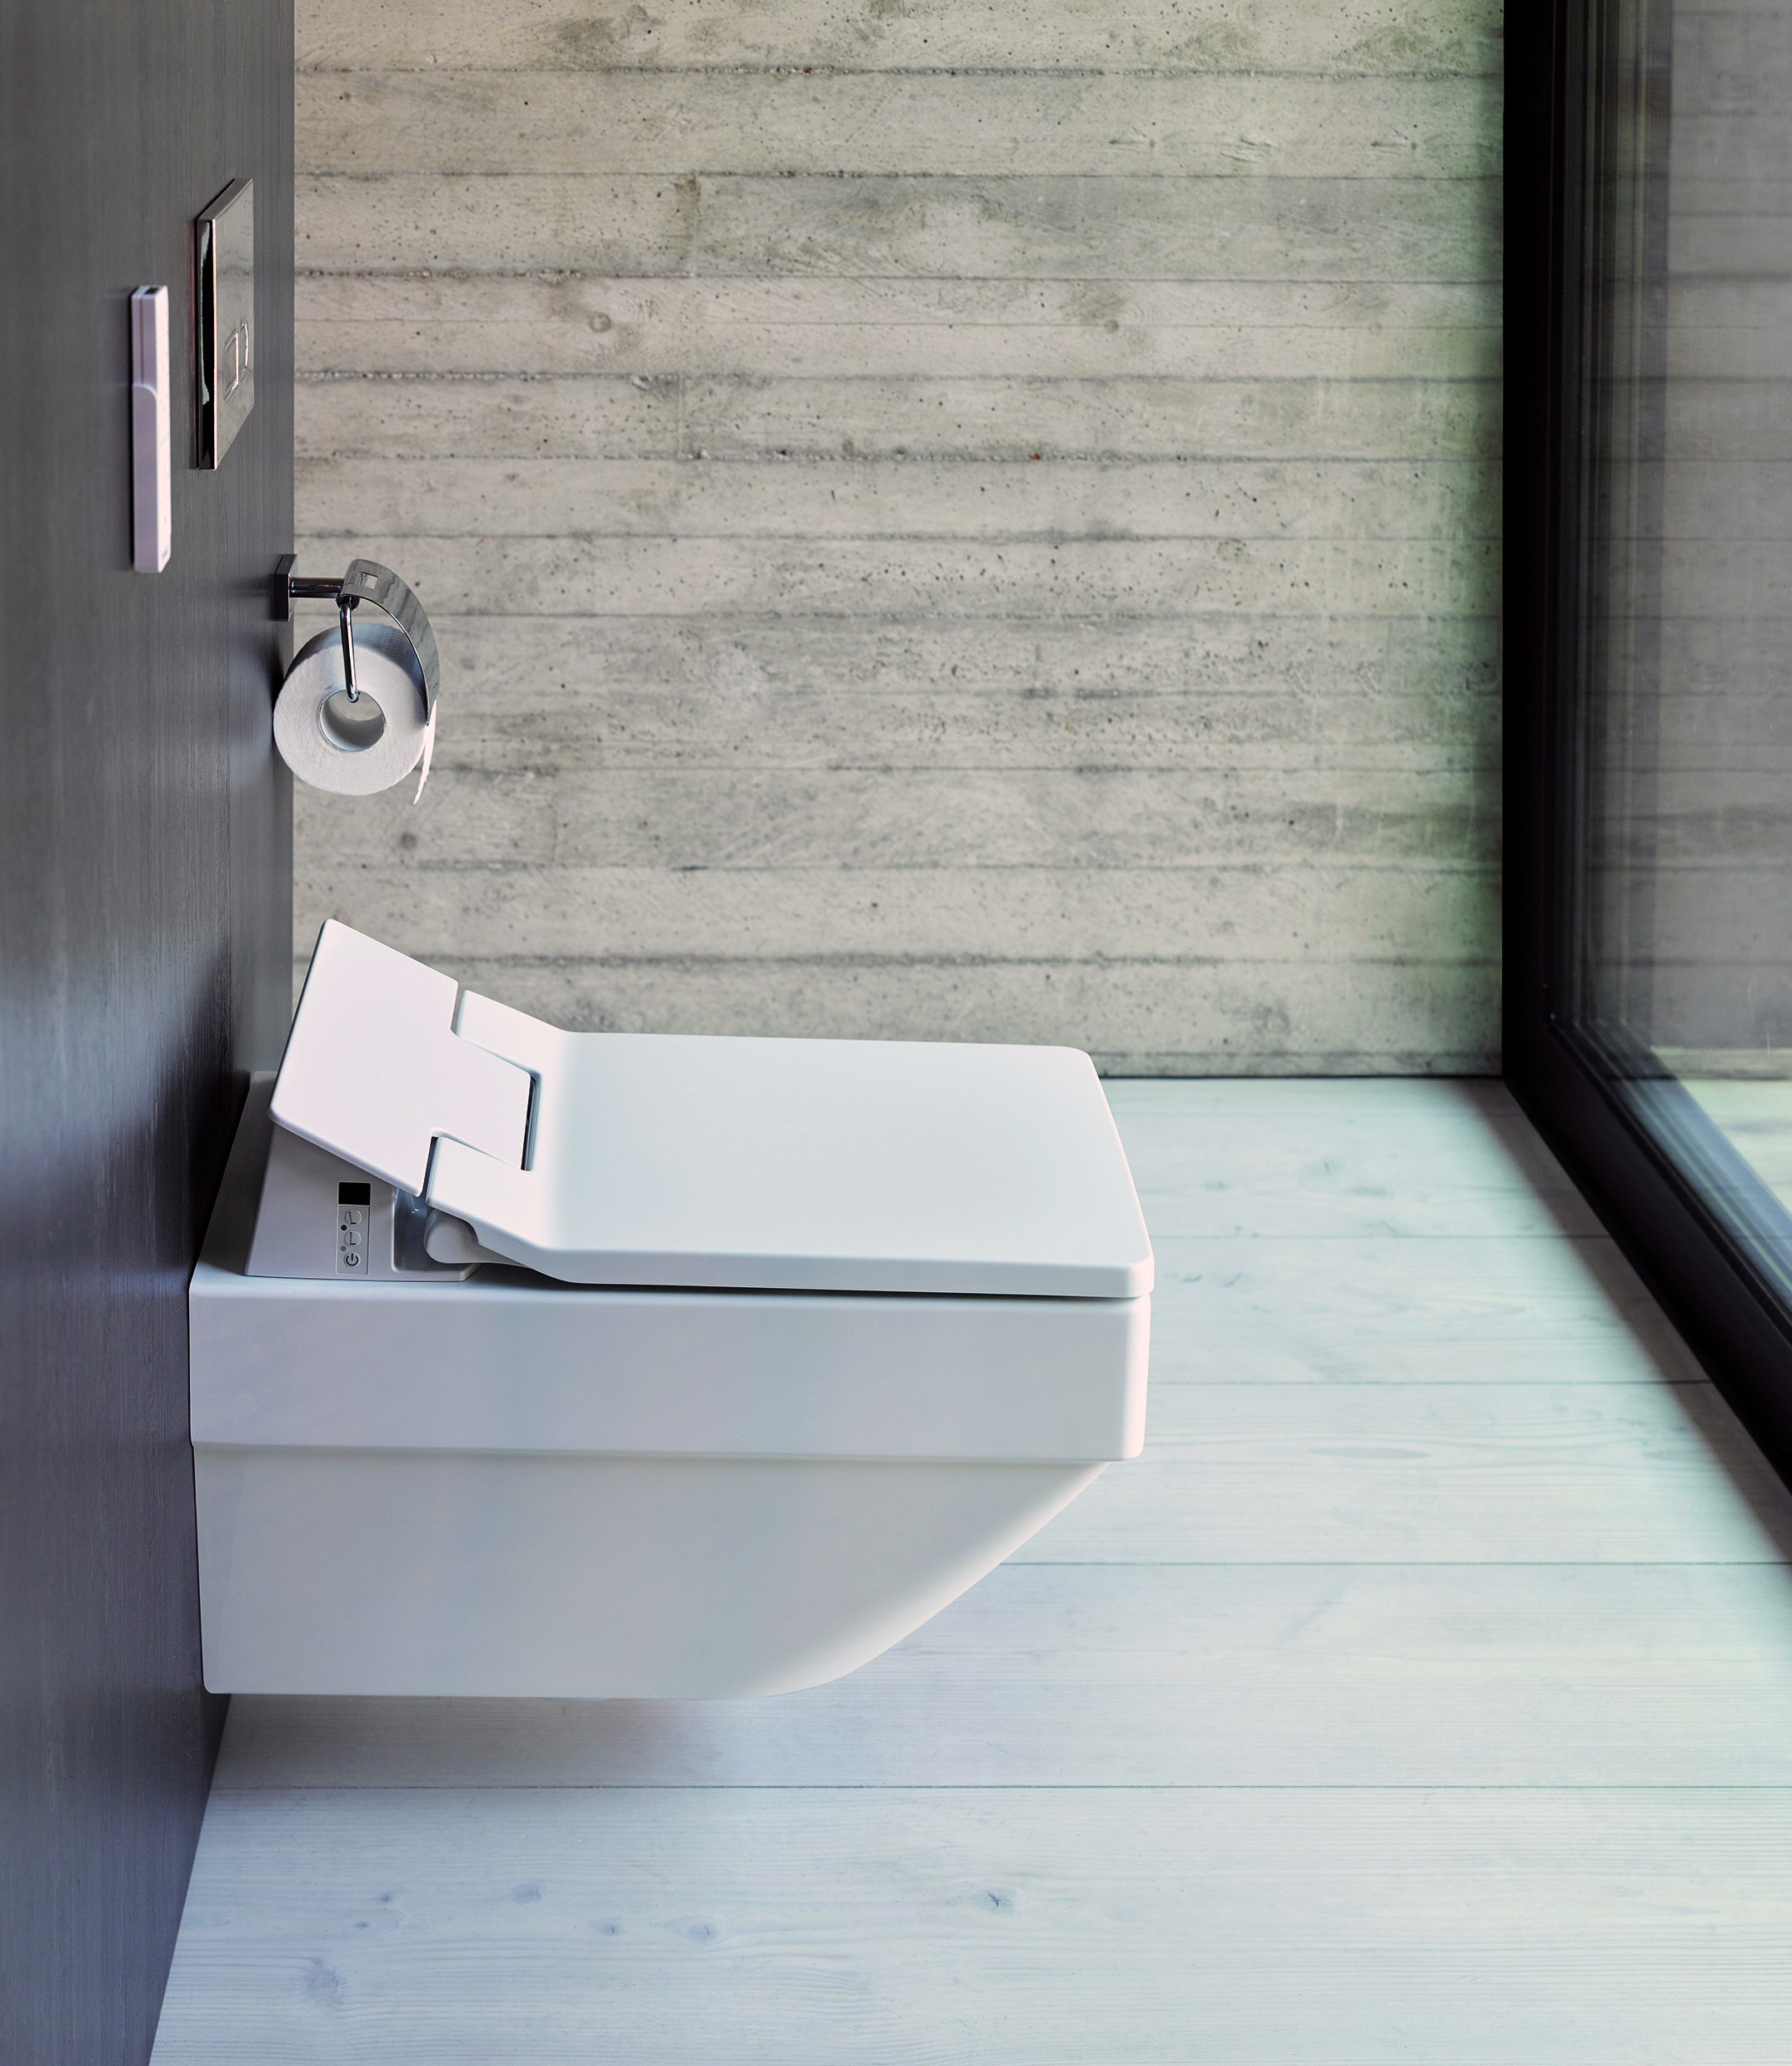 Duravit's latest WC offering